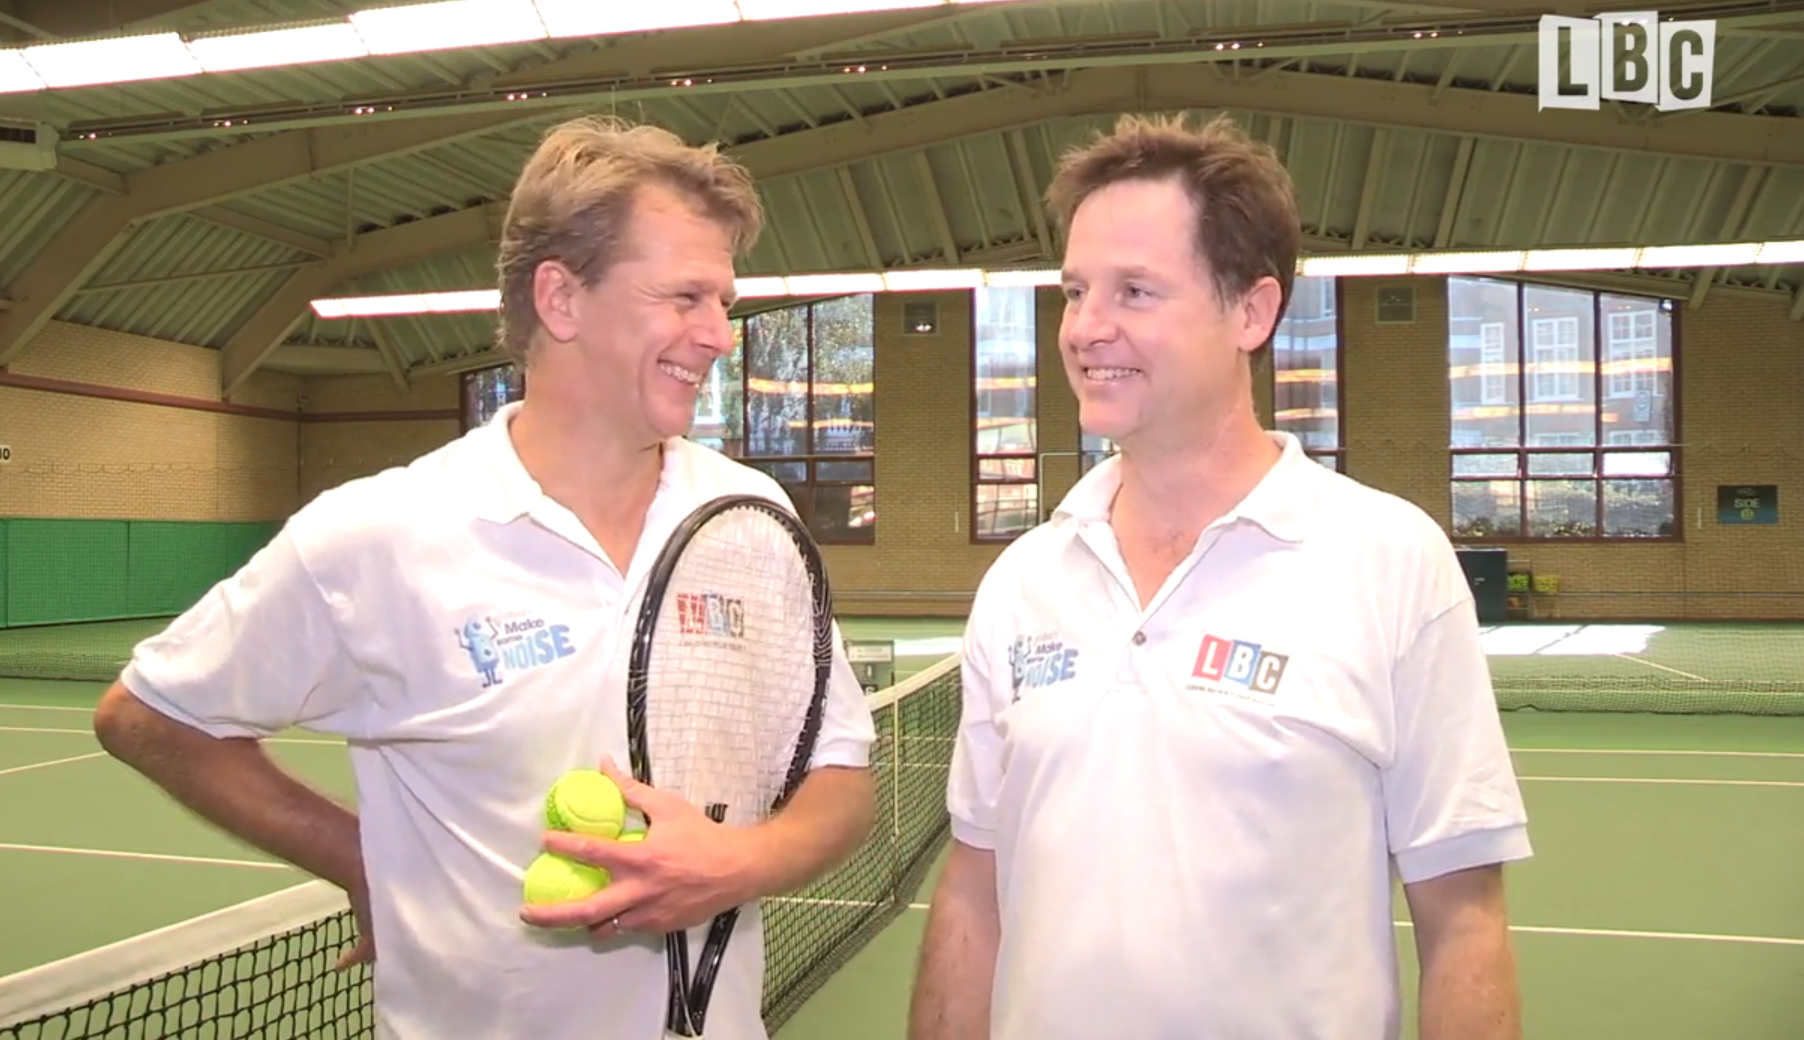 Nick Clegg Vs Andrew Castle: Watch Highlights Of The Charity Tennis Match Here!